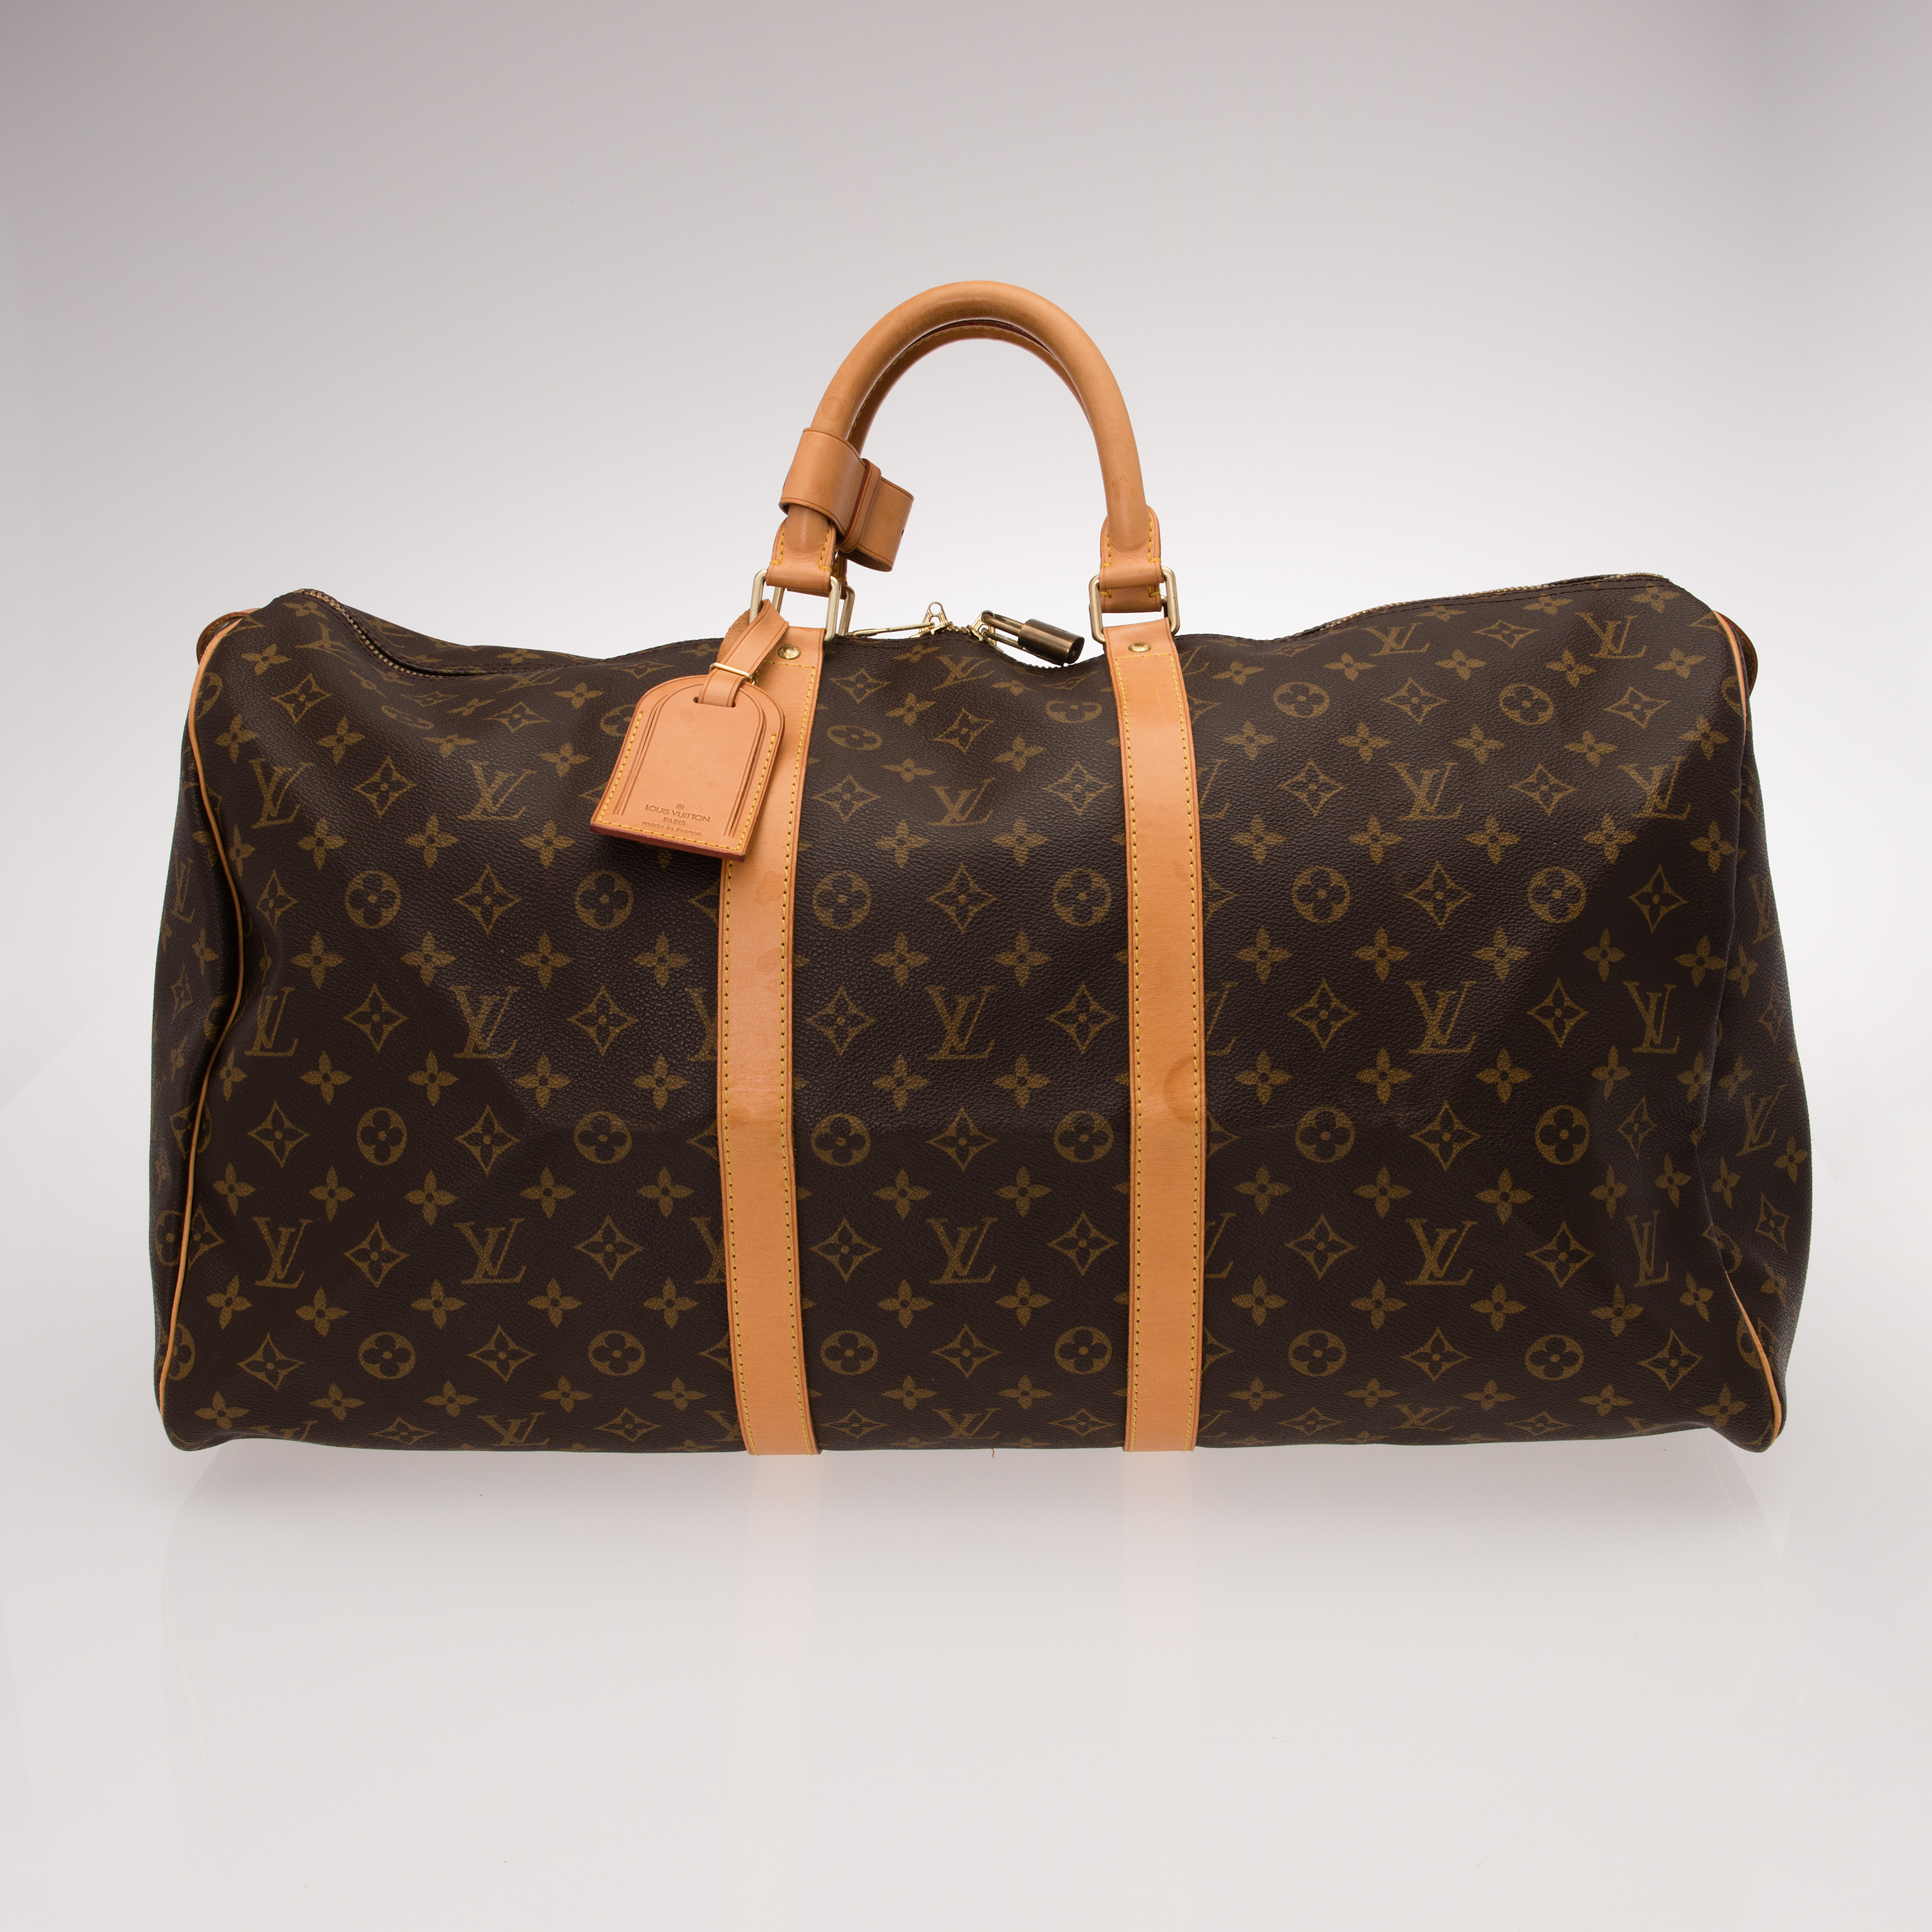 Louis Vuitton Aito Laukku : Laukku quot keepall louis vuitton bukowskis